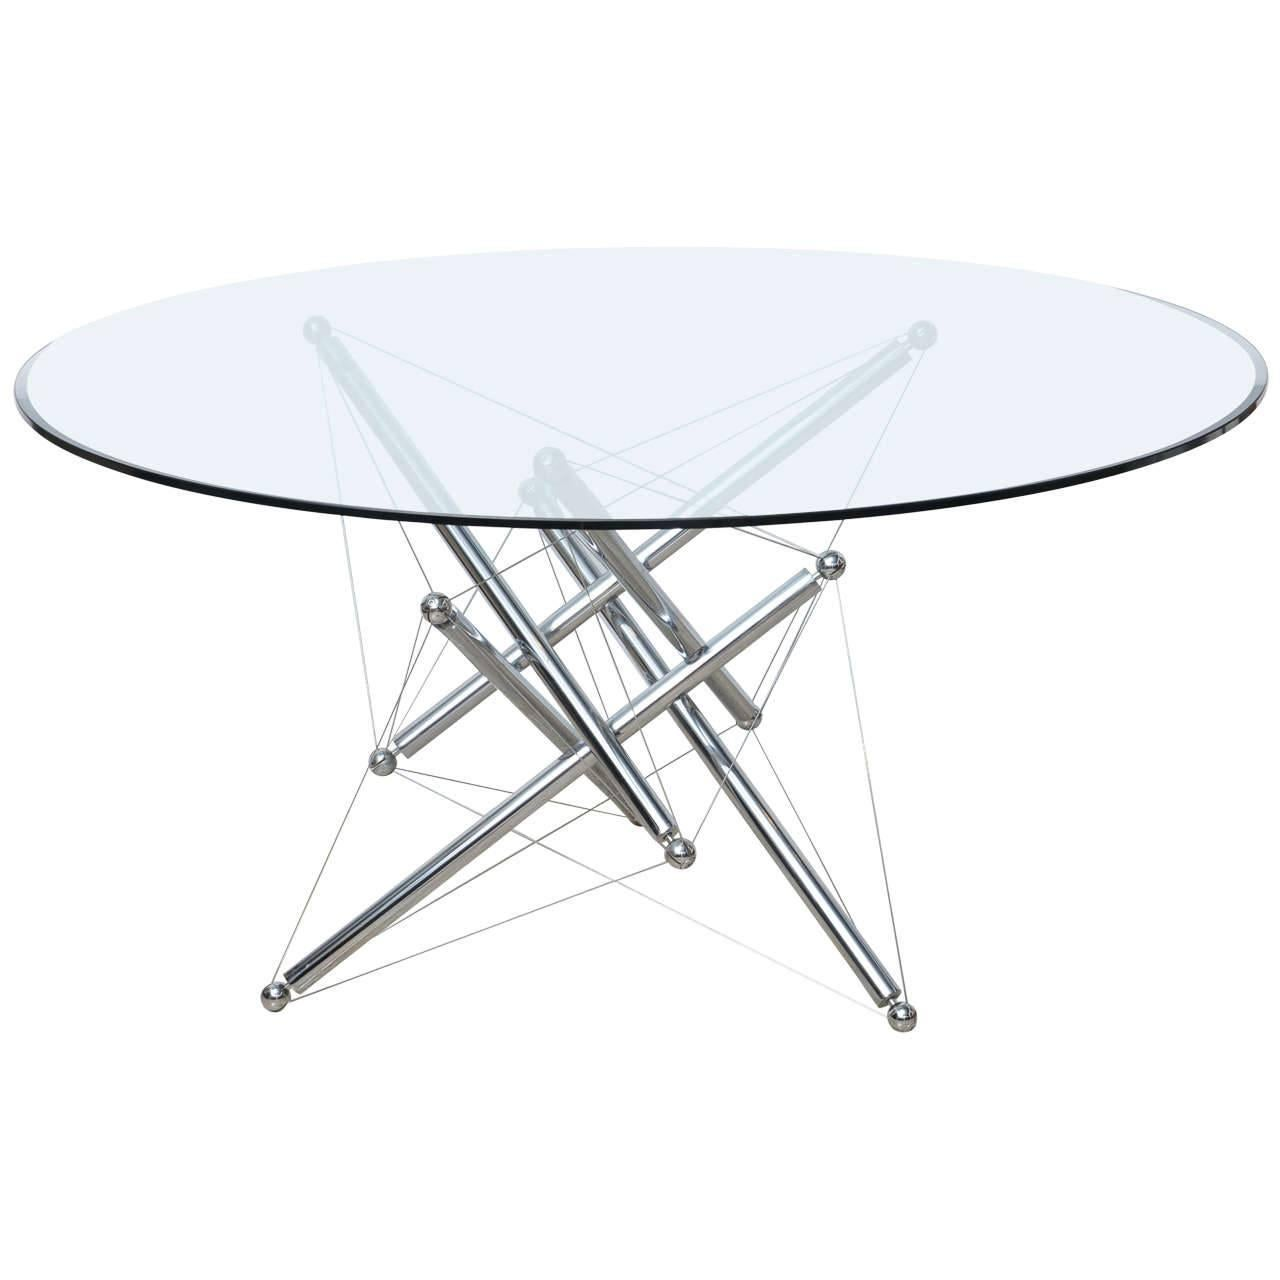 Italian Modern Chromed Steel And Glass Center Table, Theodore Waddell,  Cassina 1